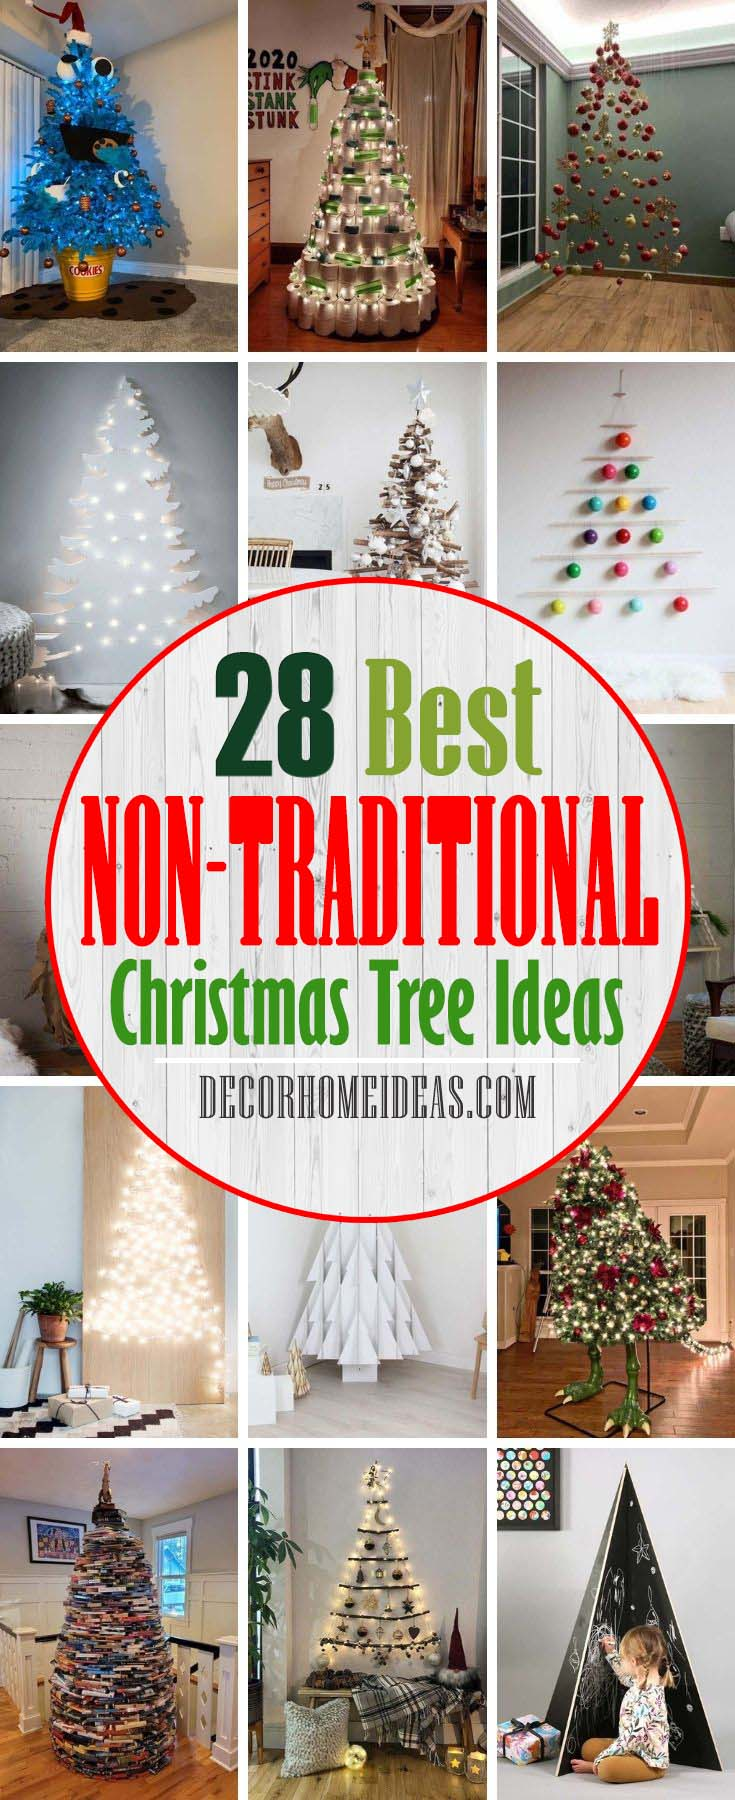 Best Non-Traditional Christmas Tree Ideas. These Christmas tree alternatives might stray away from the norm, but they're poised to add some personality to any space and spark your creativity for your own Christmas tree project this year. #decorhomeideas